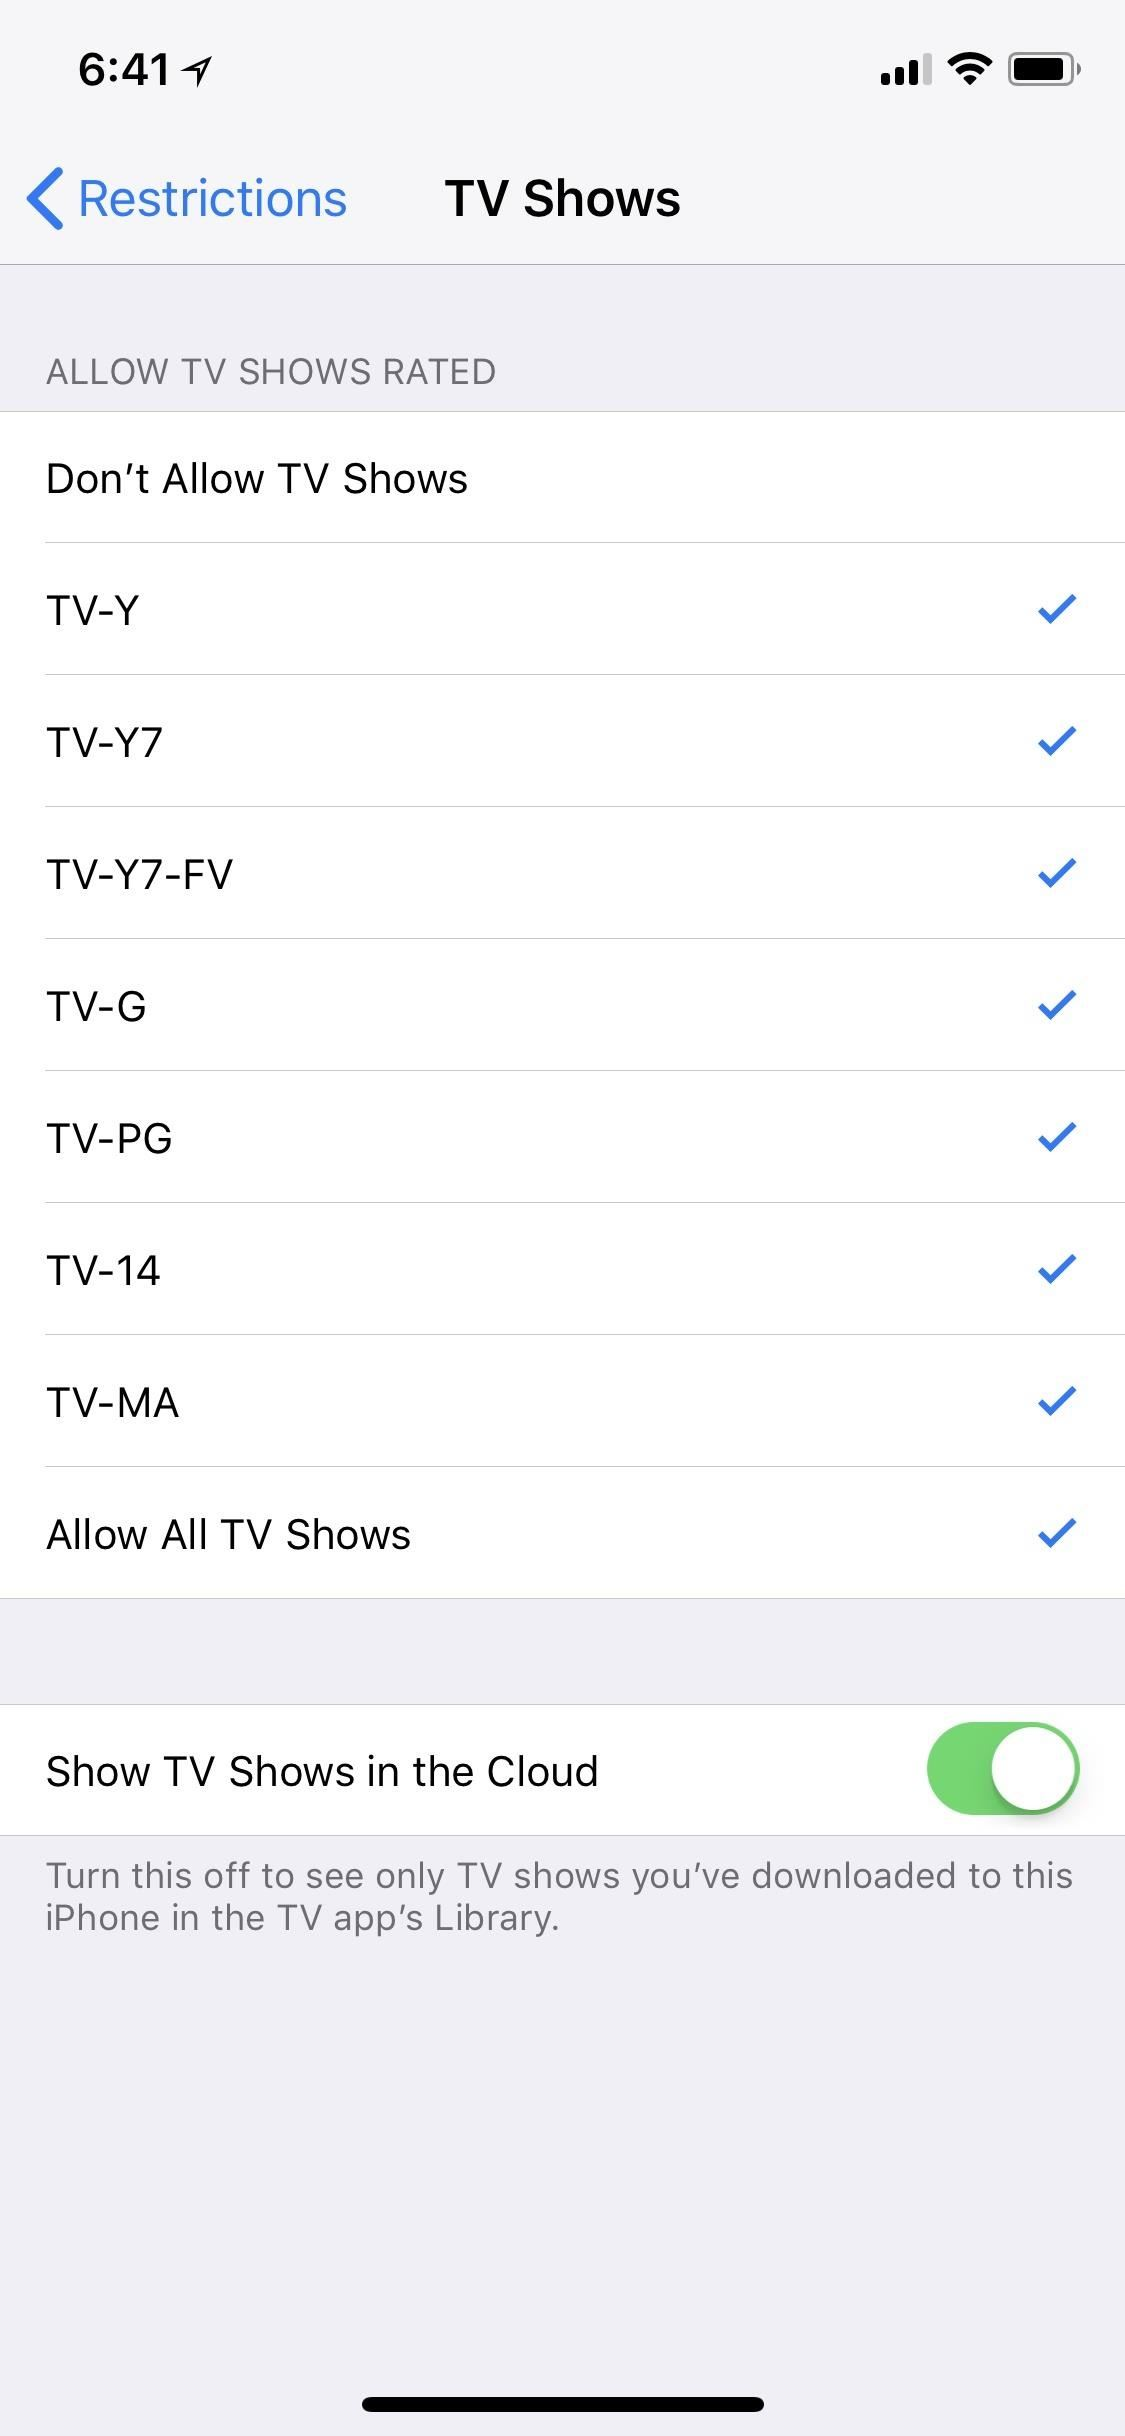 How to Hide or Restrict Apps, Features, Content & Settings on an iPhone